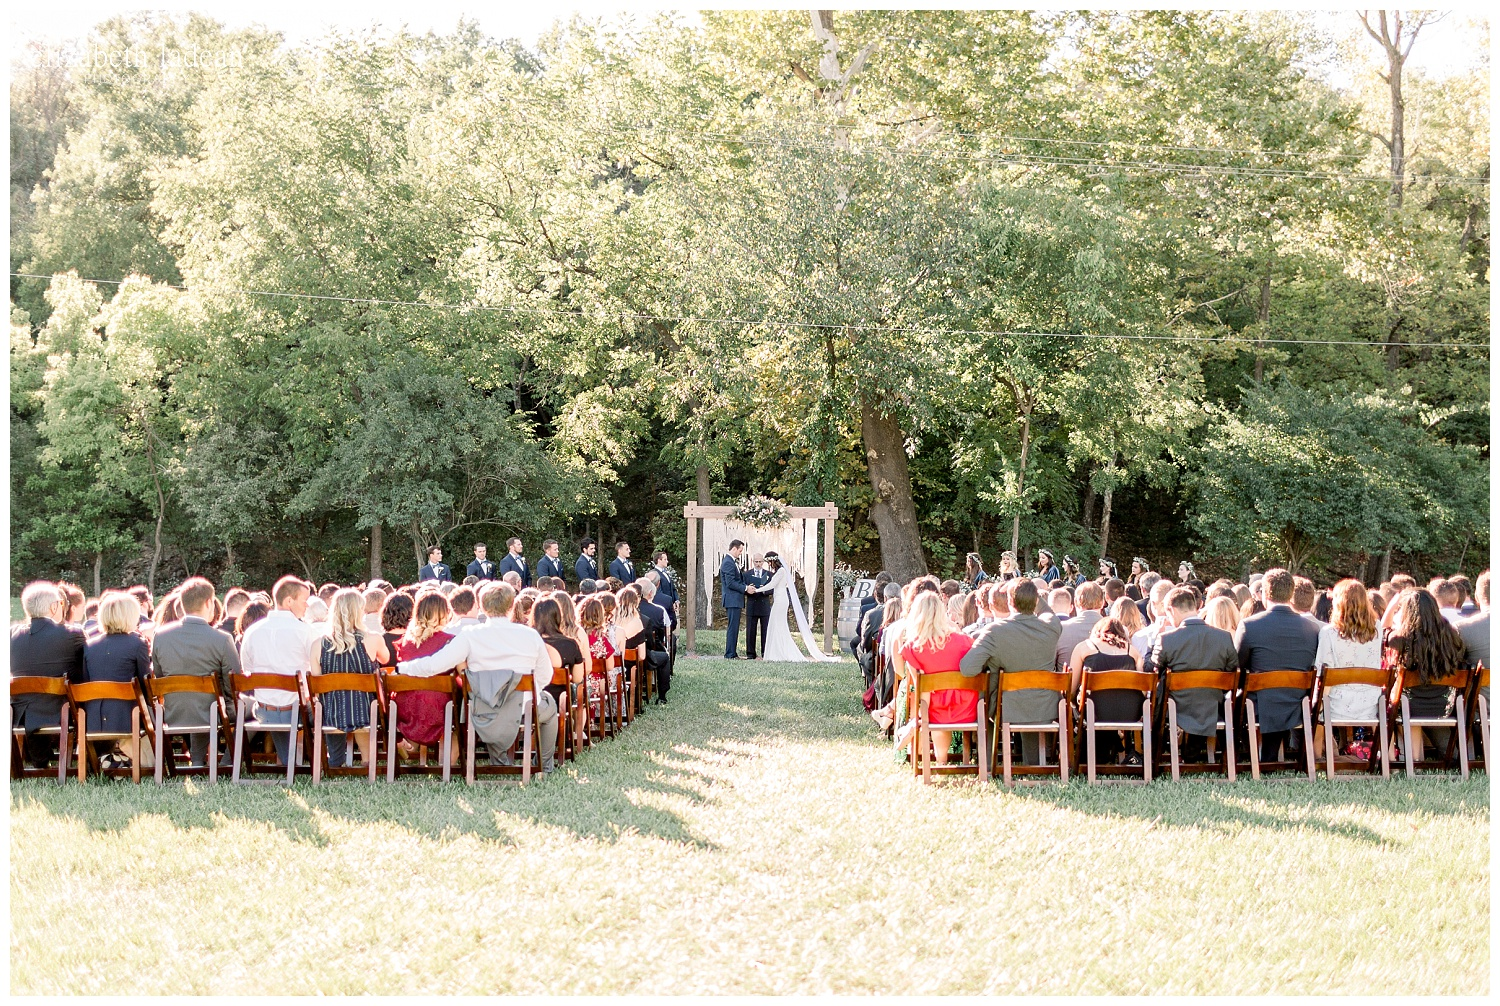 Willow-Creek-Blush-and-Blues-Outdoor-Wedding-Photography-S+Z2018-elizabeth-ladean-photography-photo_0570.jpg